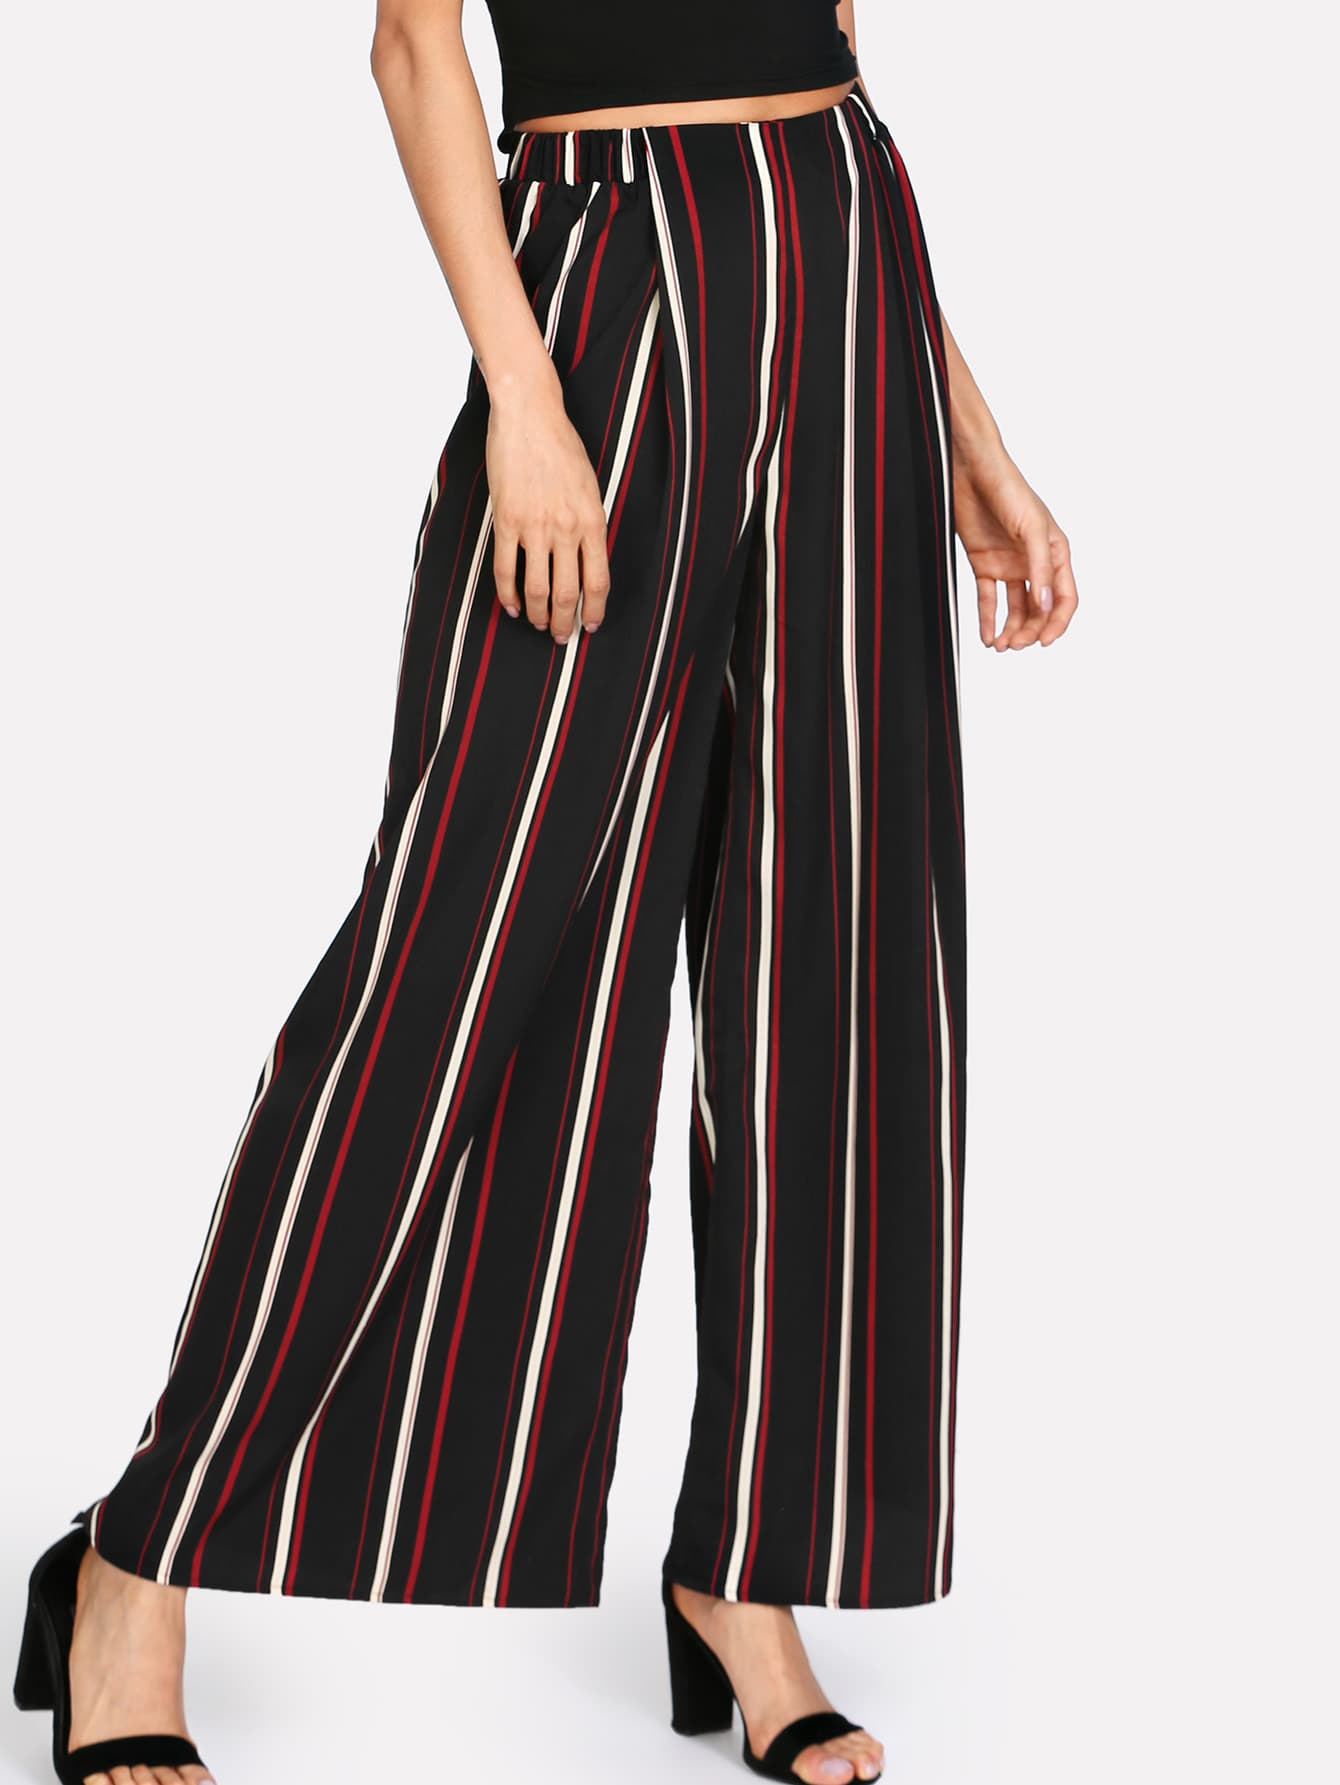 Vertical Striped Palazzo Pants vertical striped pants